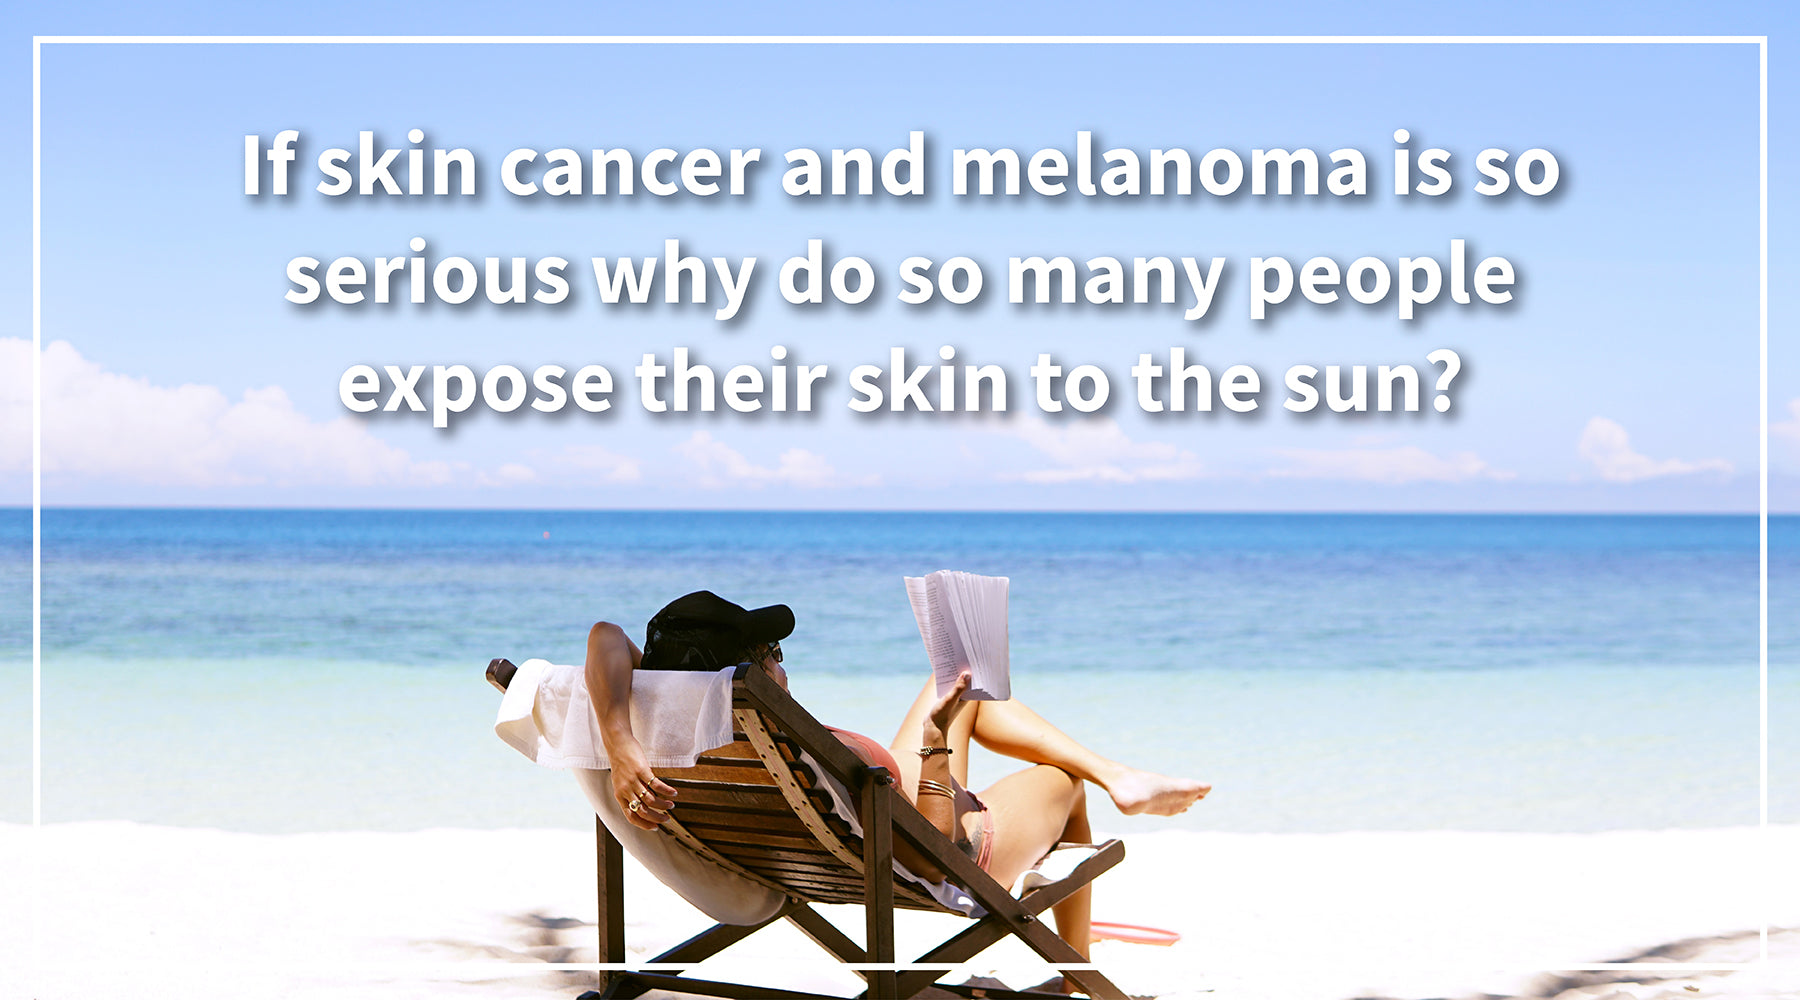 If skin cancer and melanoma is so serious why do so many people expose their skin to the sun?